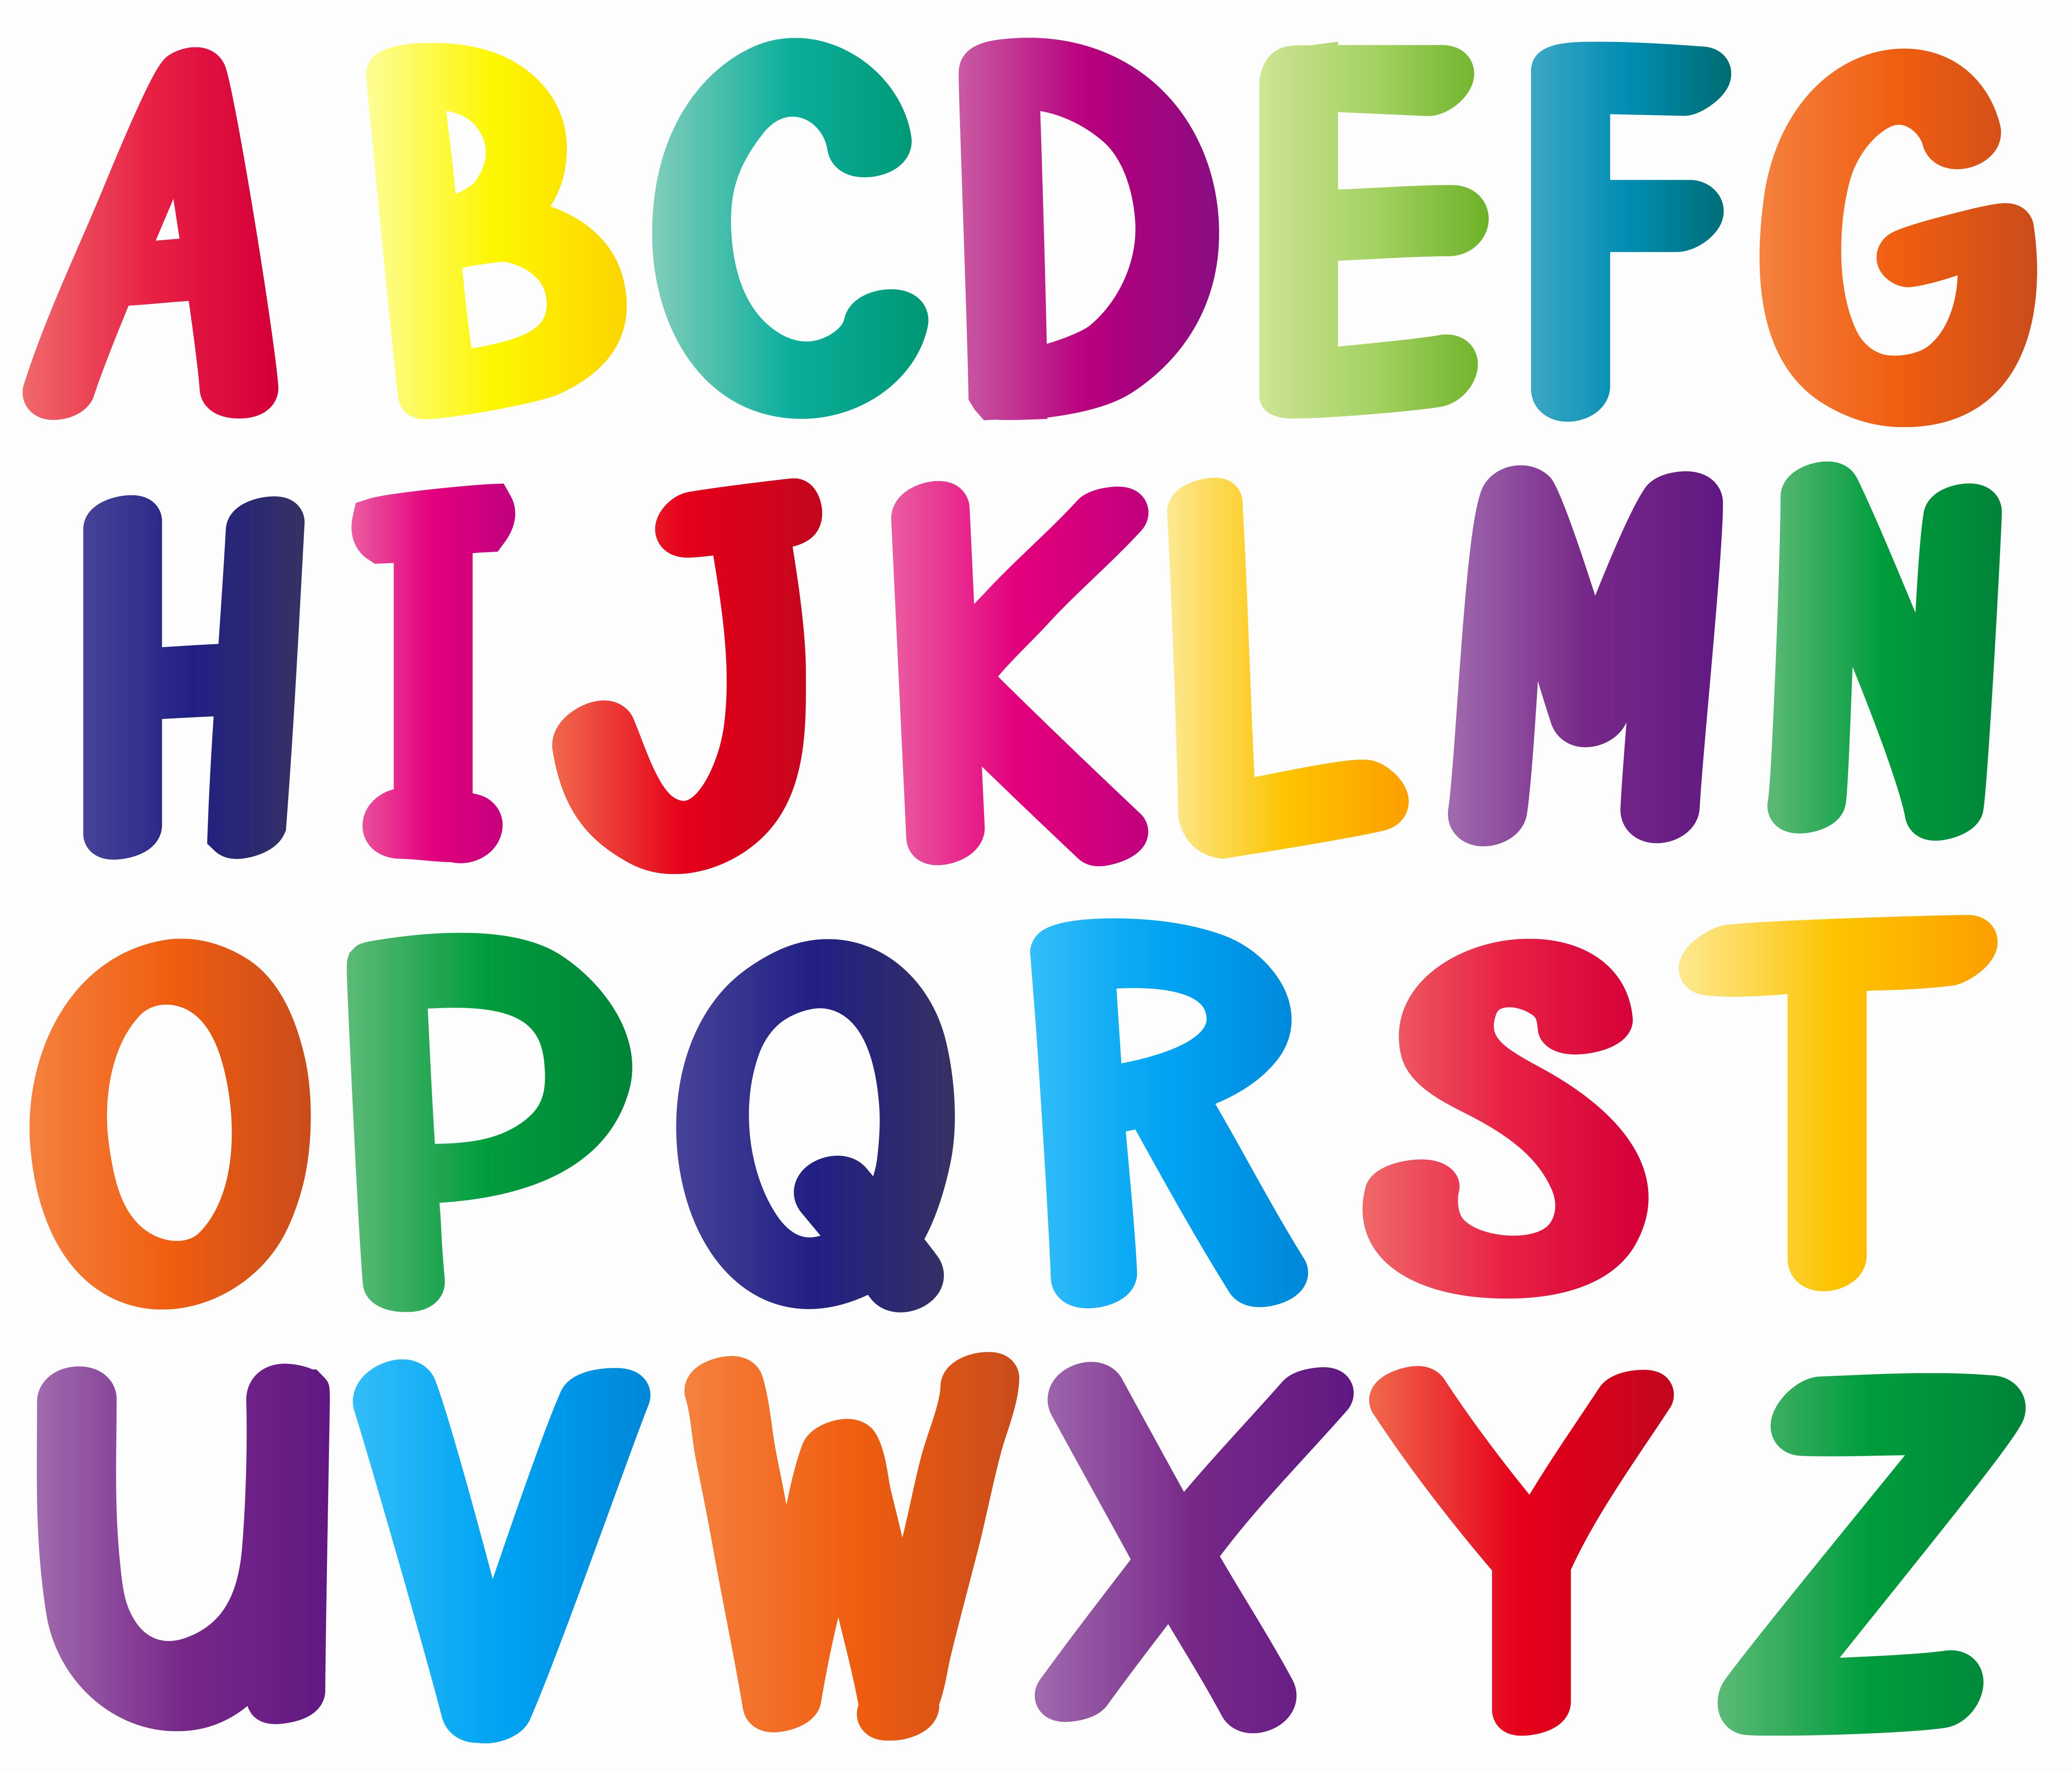 Alphabet Letters with Pictures Unique English Alphabets In Many Colors Download Free Vector